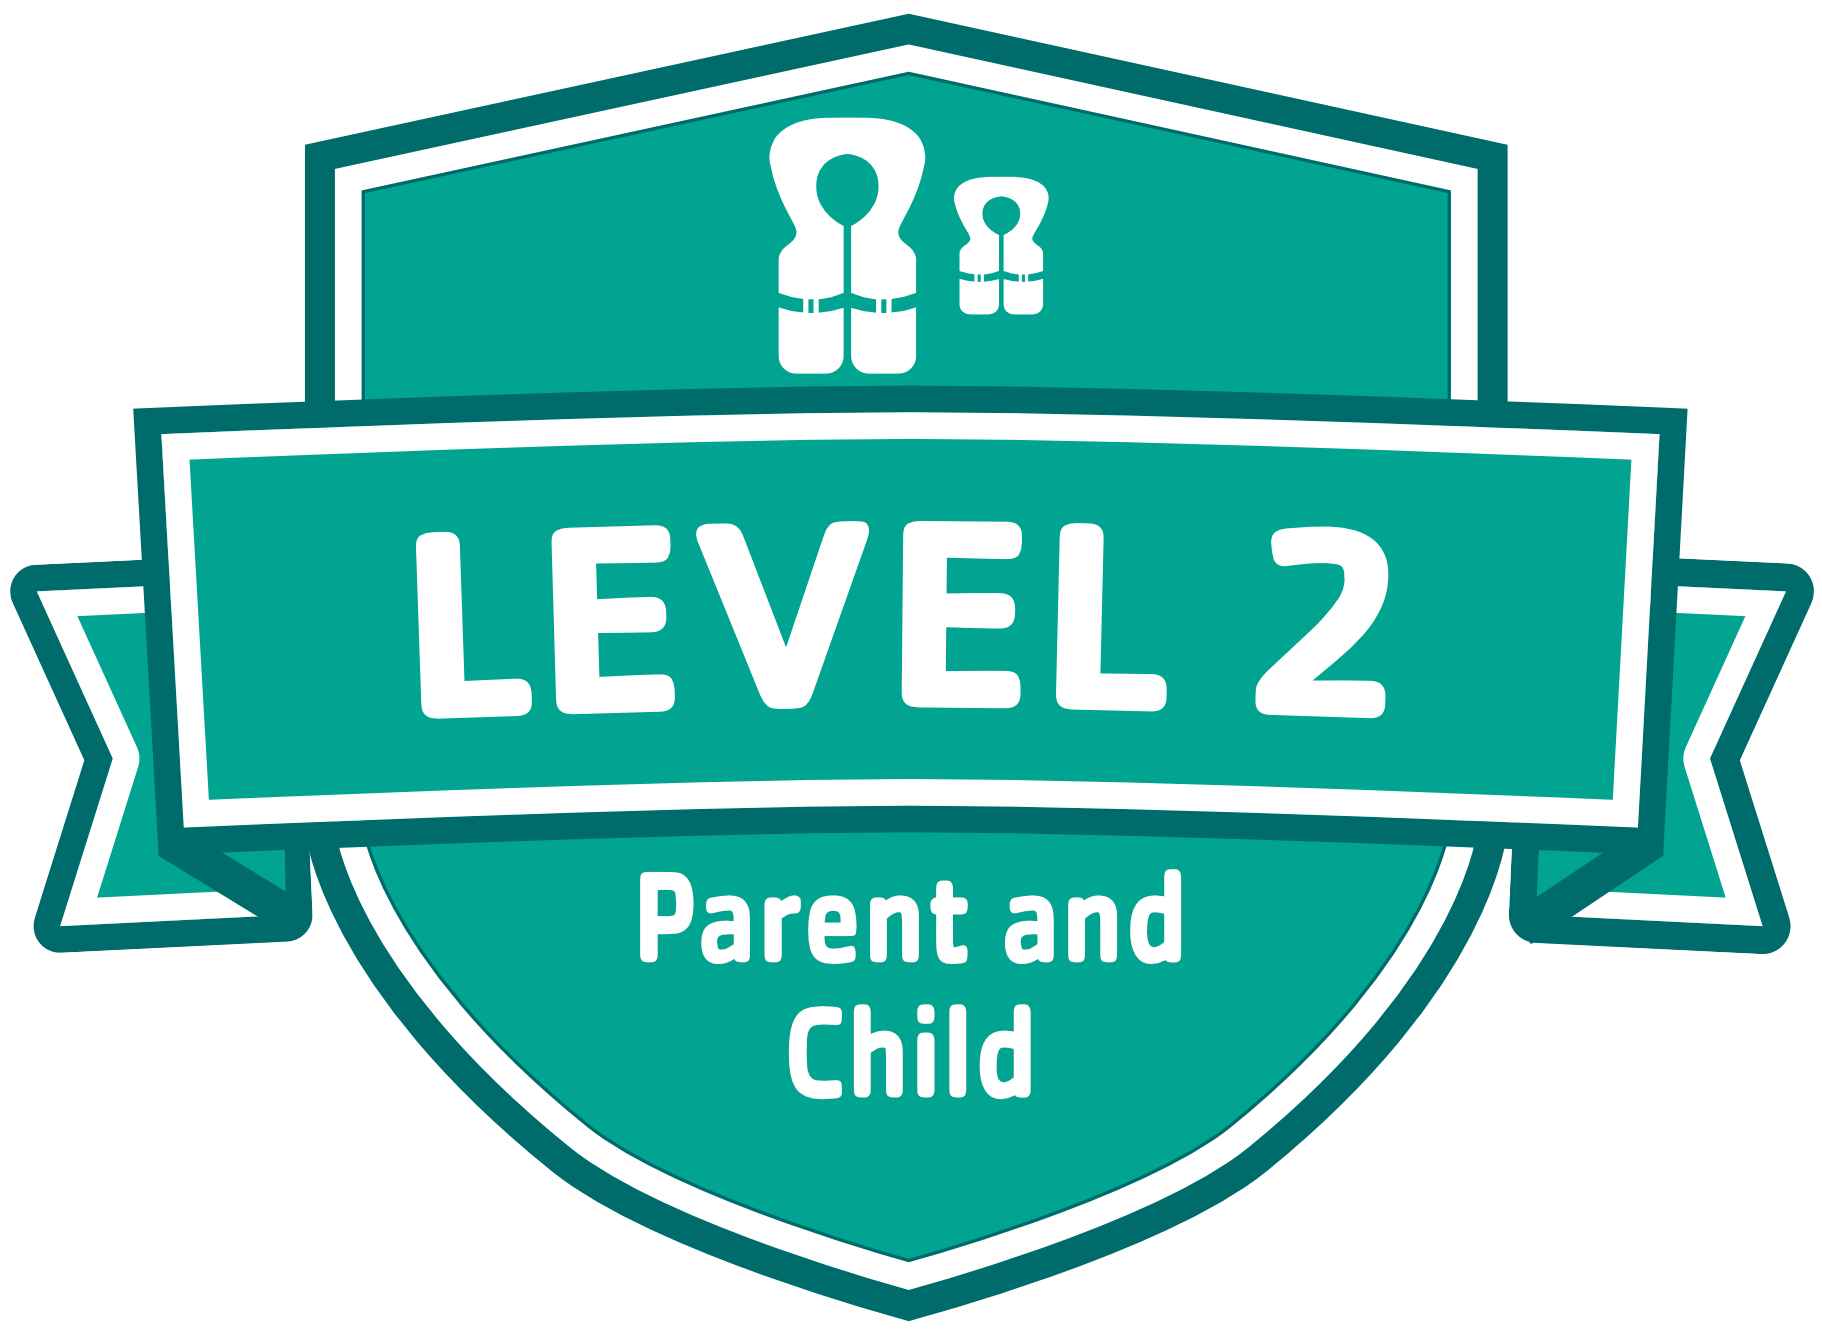 Parent Child Badge 2